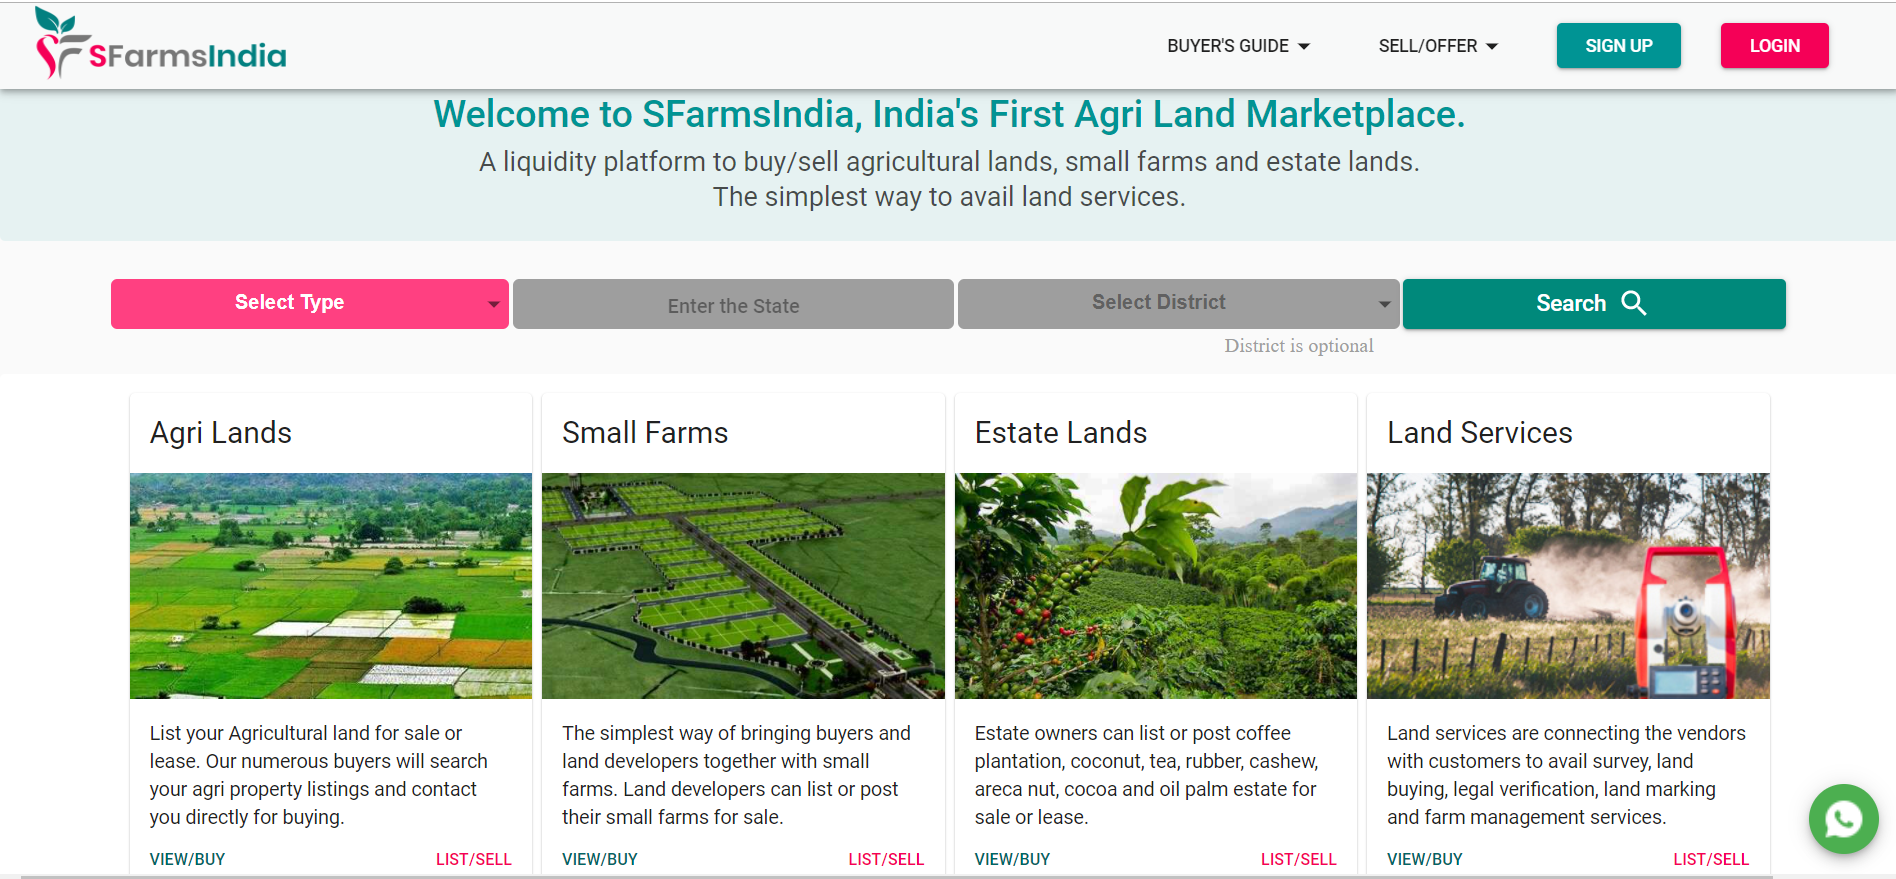 buying-agricultural-land-through-online-marketplaces